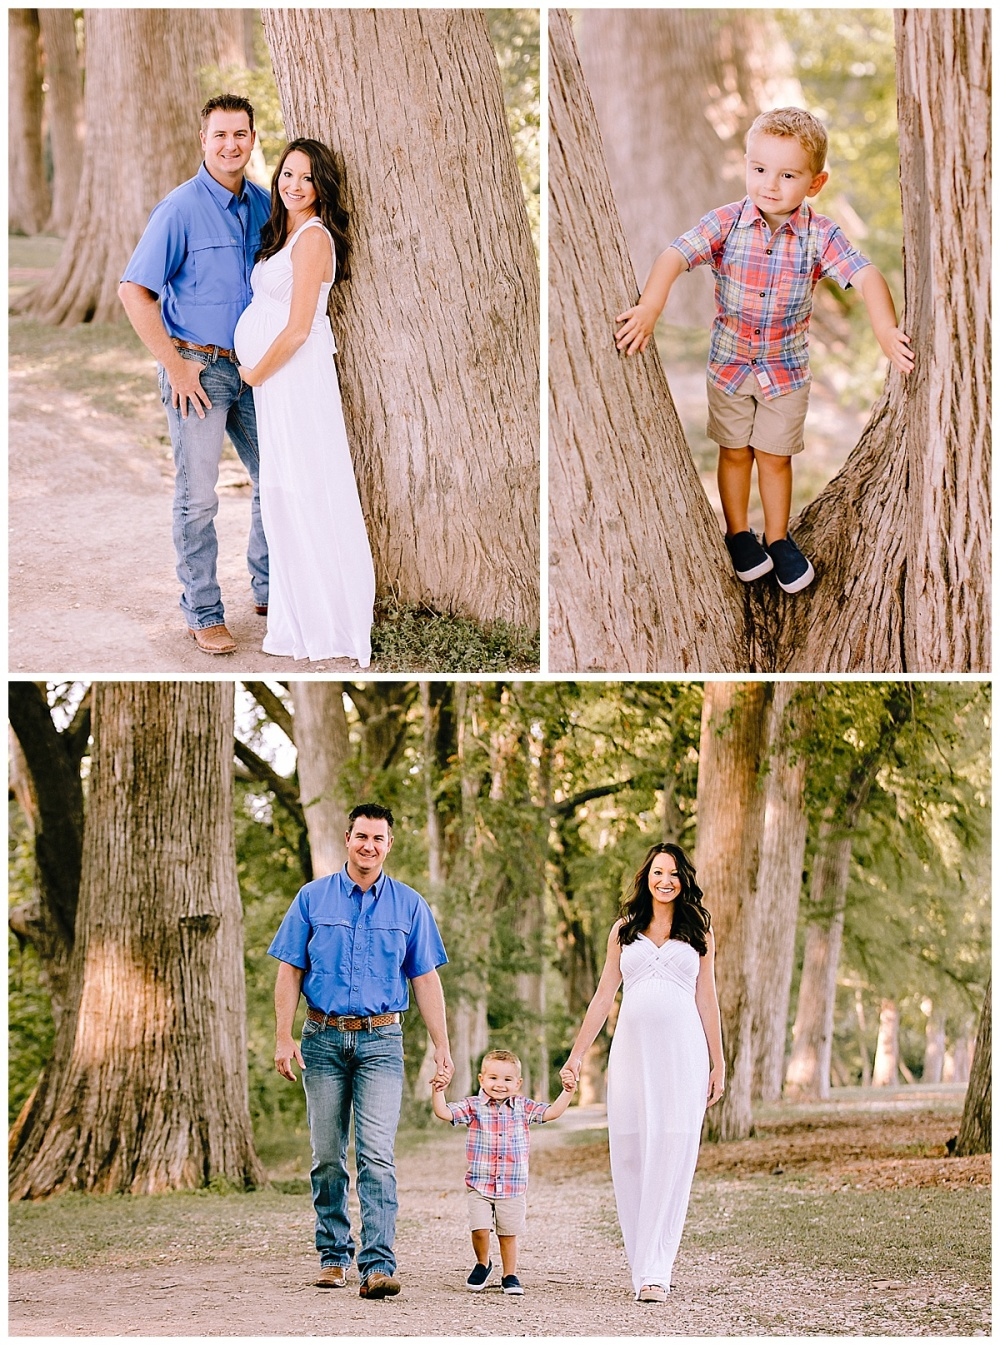 Carly-Barton-Photography-Maternity-Photos-Cypress-Bend-Park-New-Braunfels-Jonas-Family-Texas_0009.jpg